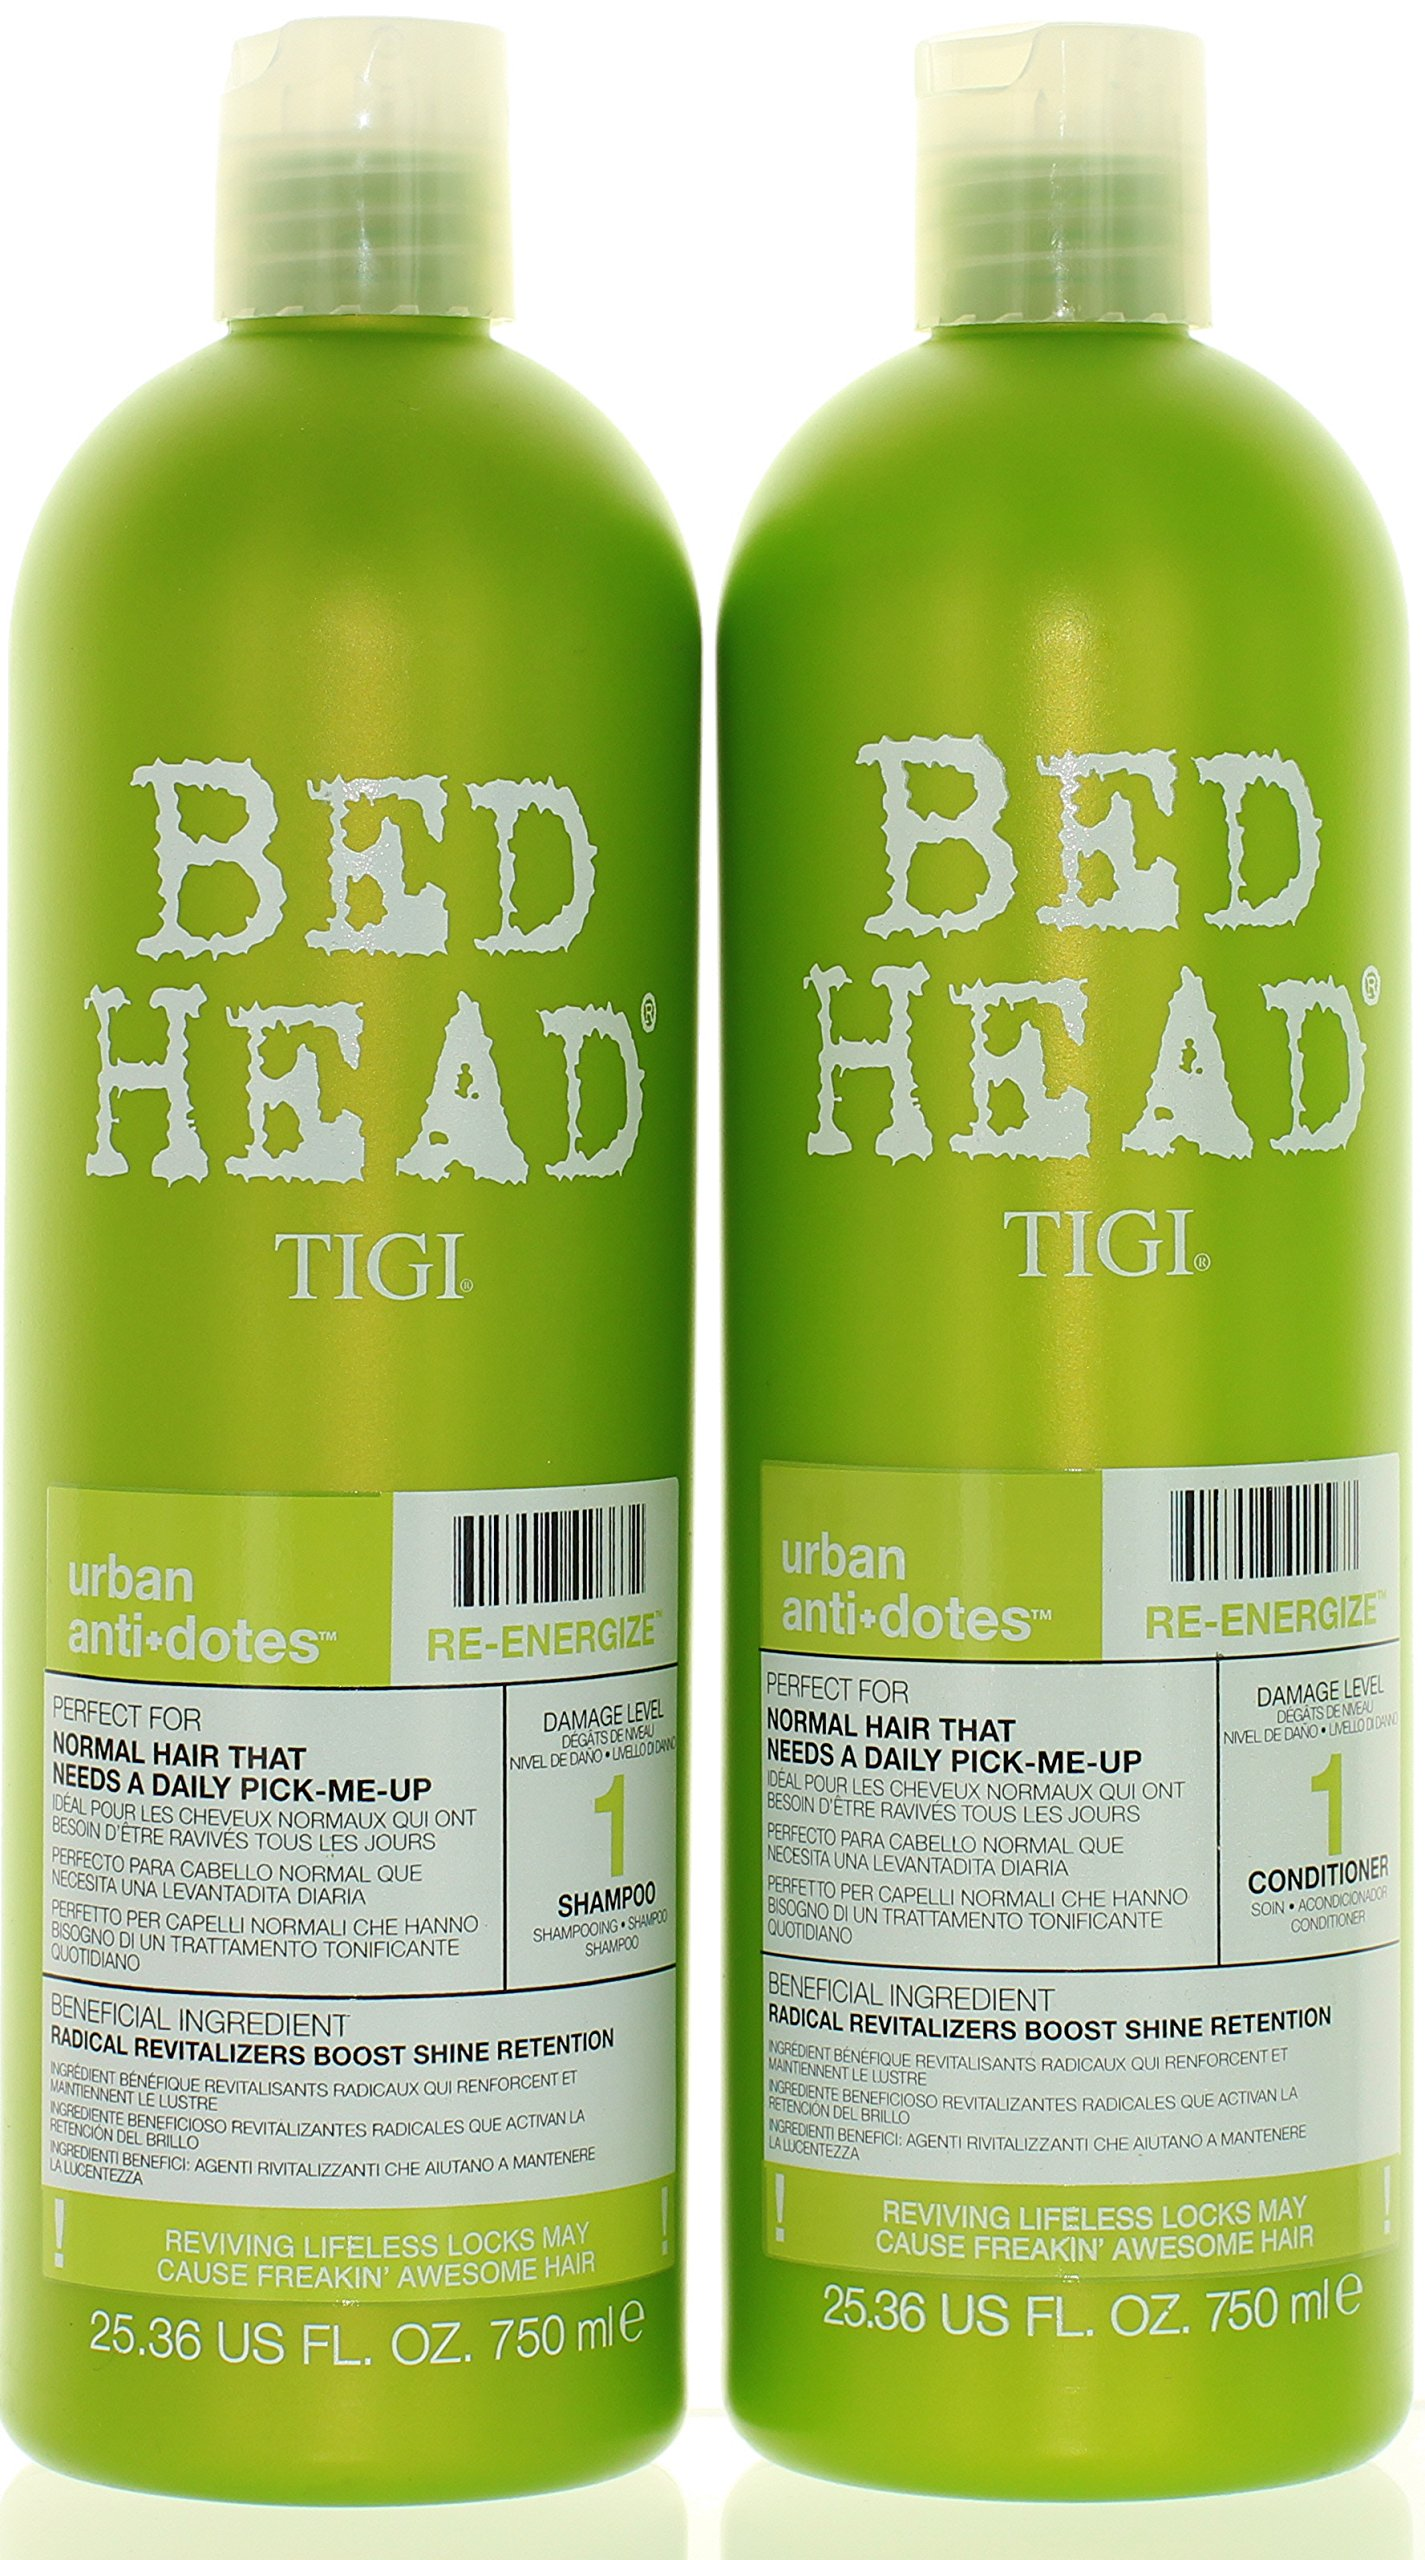 TIGI Bed Head Re-Energize Shampoo and Conditioner Duo, 25.36 oz